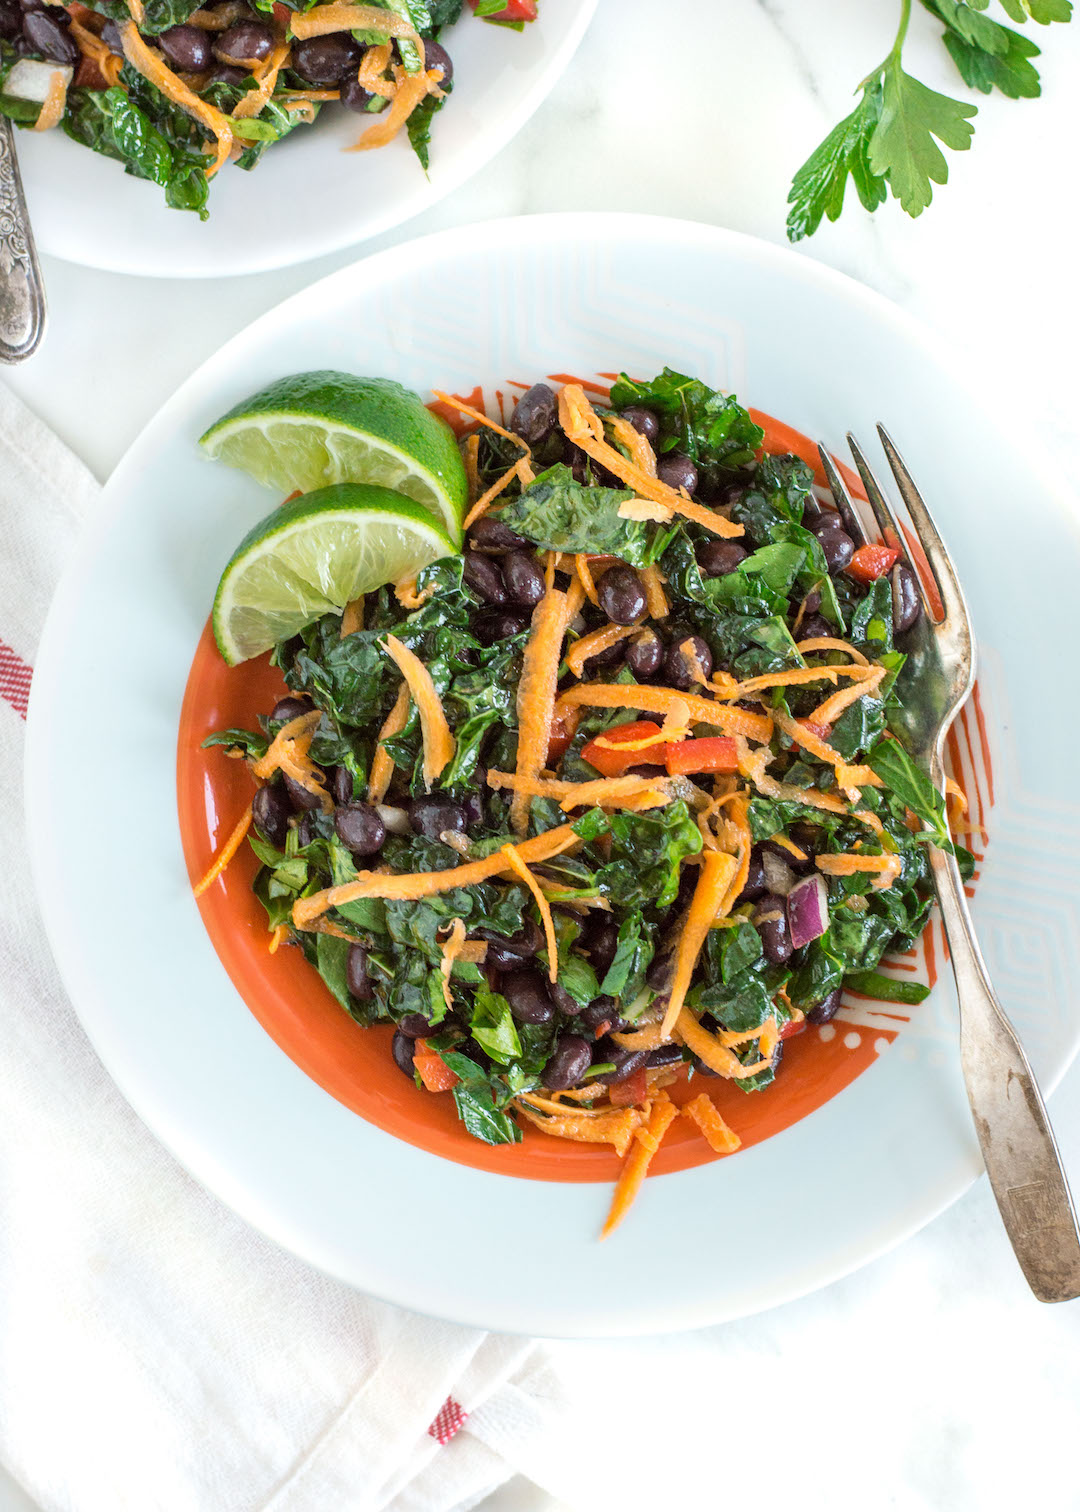 Easy black bean and kale salad nourished easy black bean and kale salad gluten free dairy free vegetarian vegan sciox Choice Image